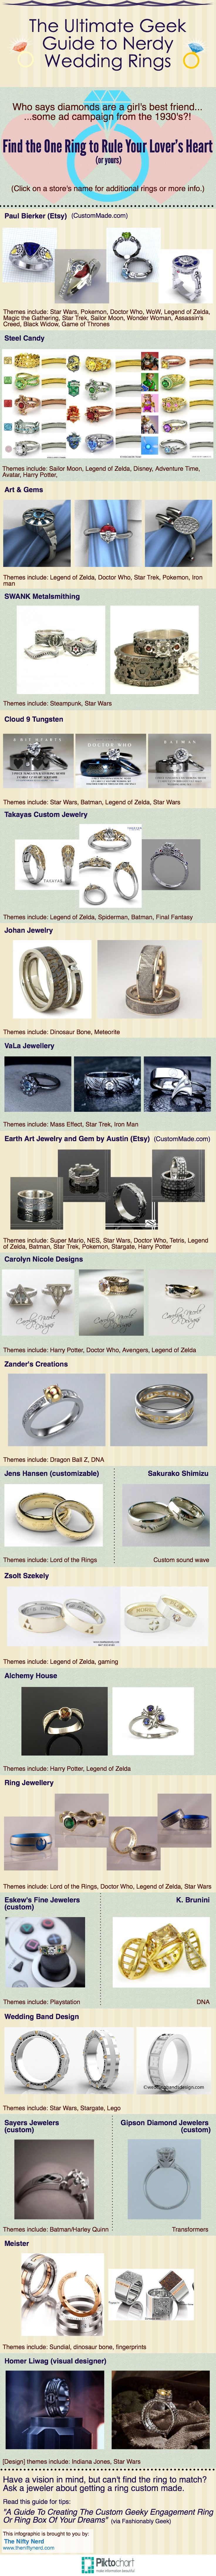 custommade order hand from wedding rings batman jewelers by diamonds made v with custom com geeky vjewelers to buy band